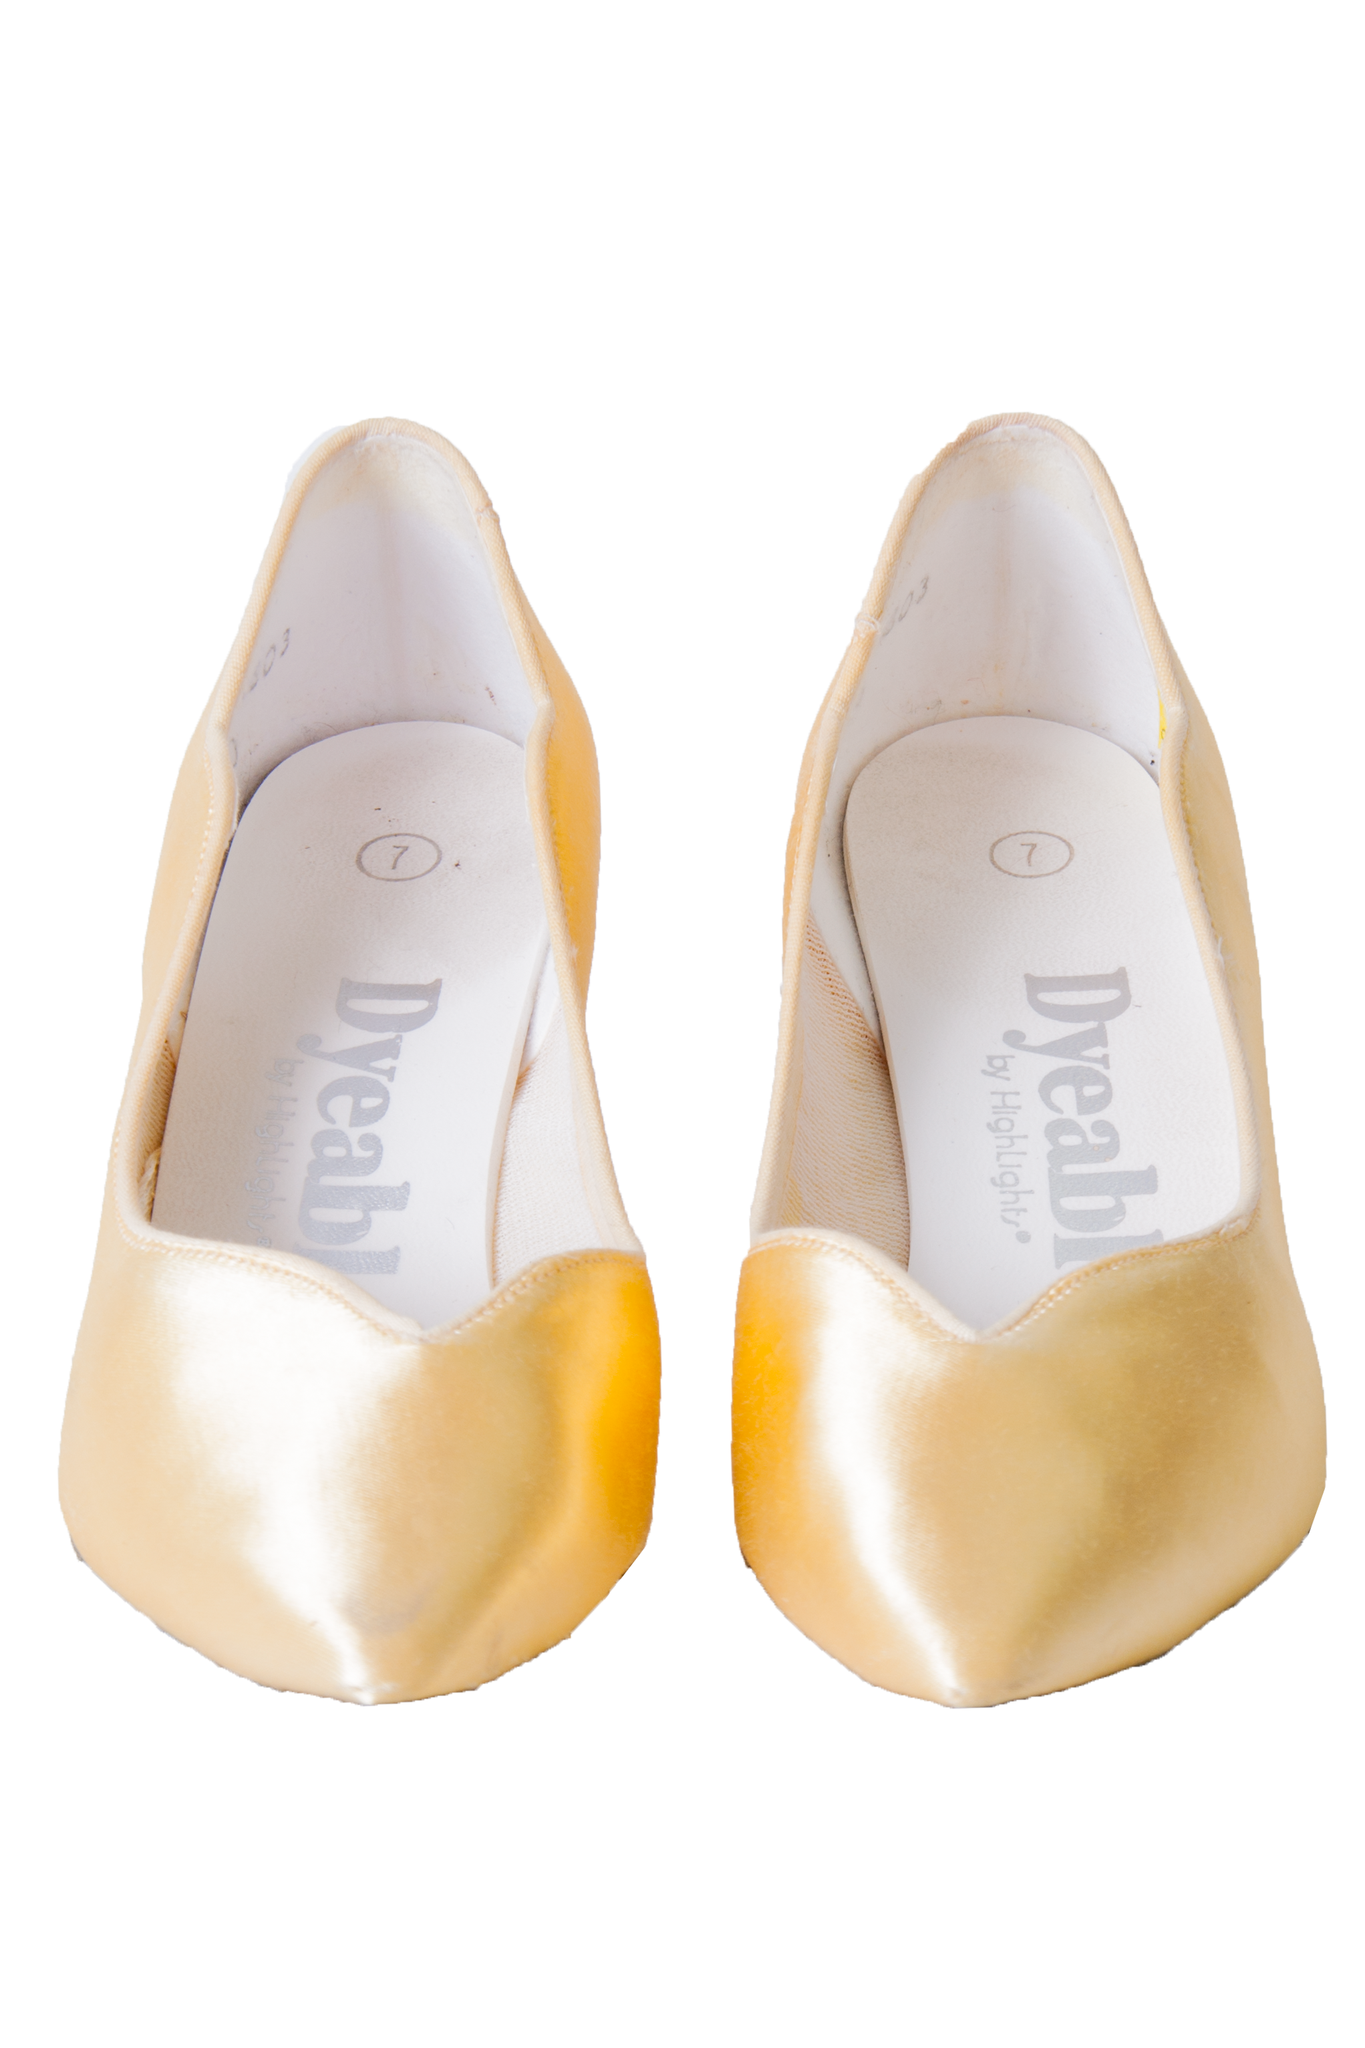 vintage yellow satin shoes